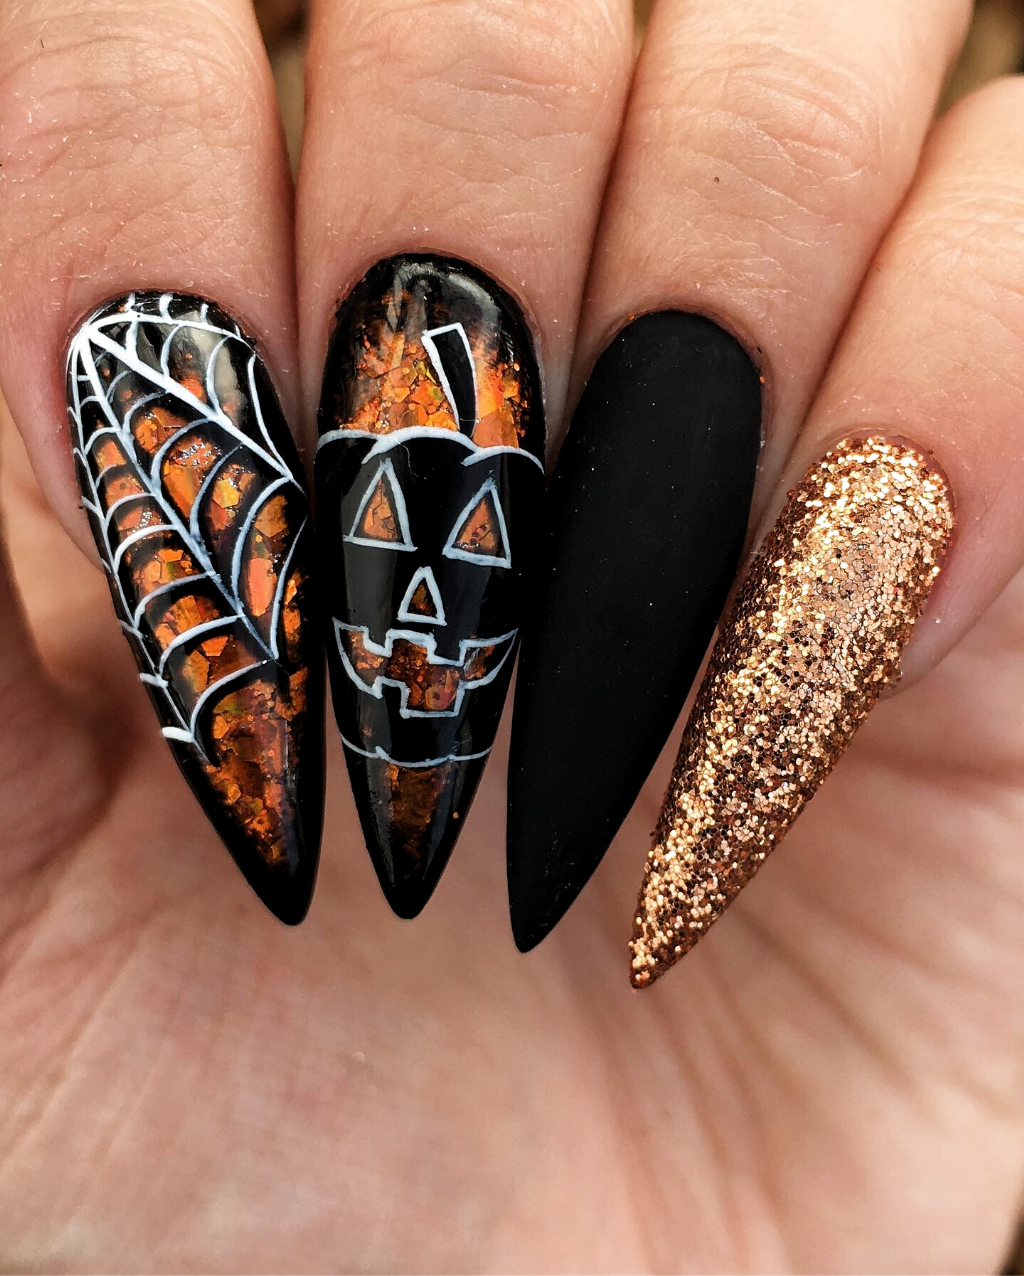 Pin by Minty on Halloween in 2020 | Halloween nail designs ...